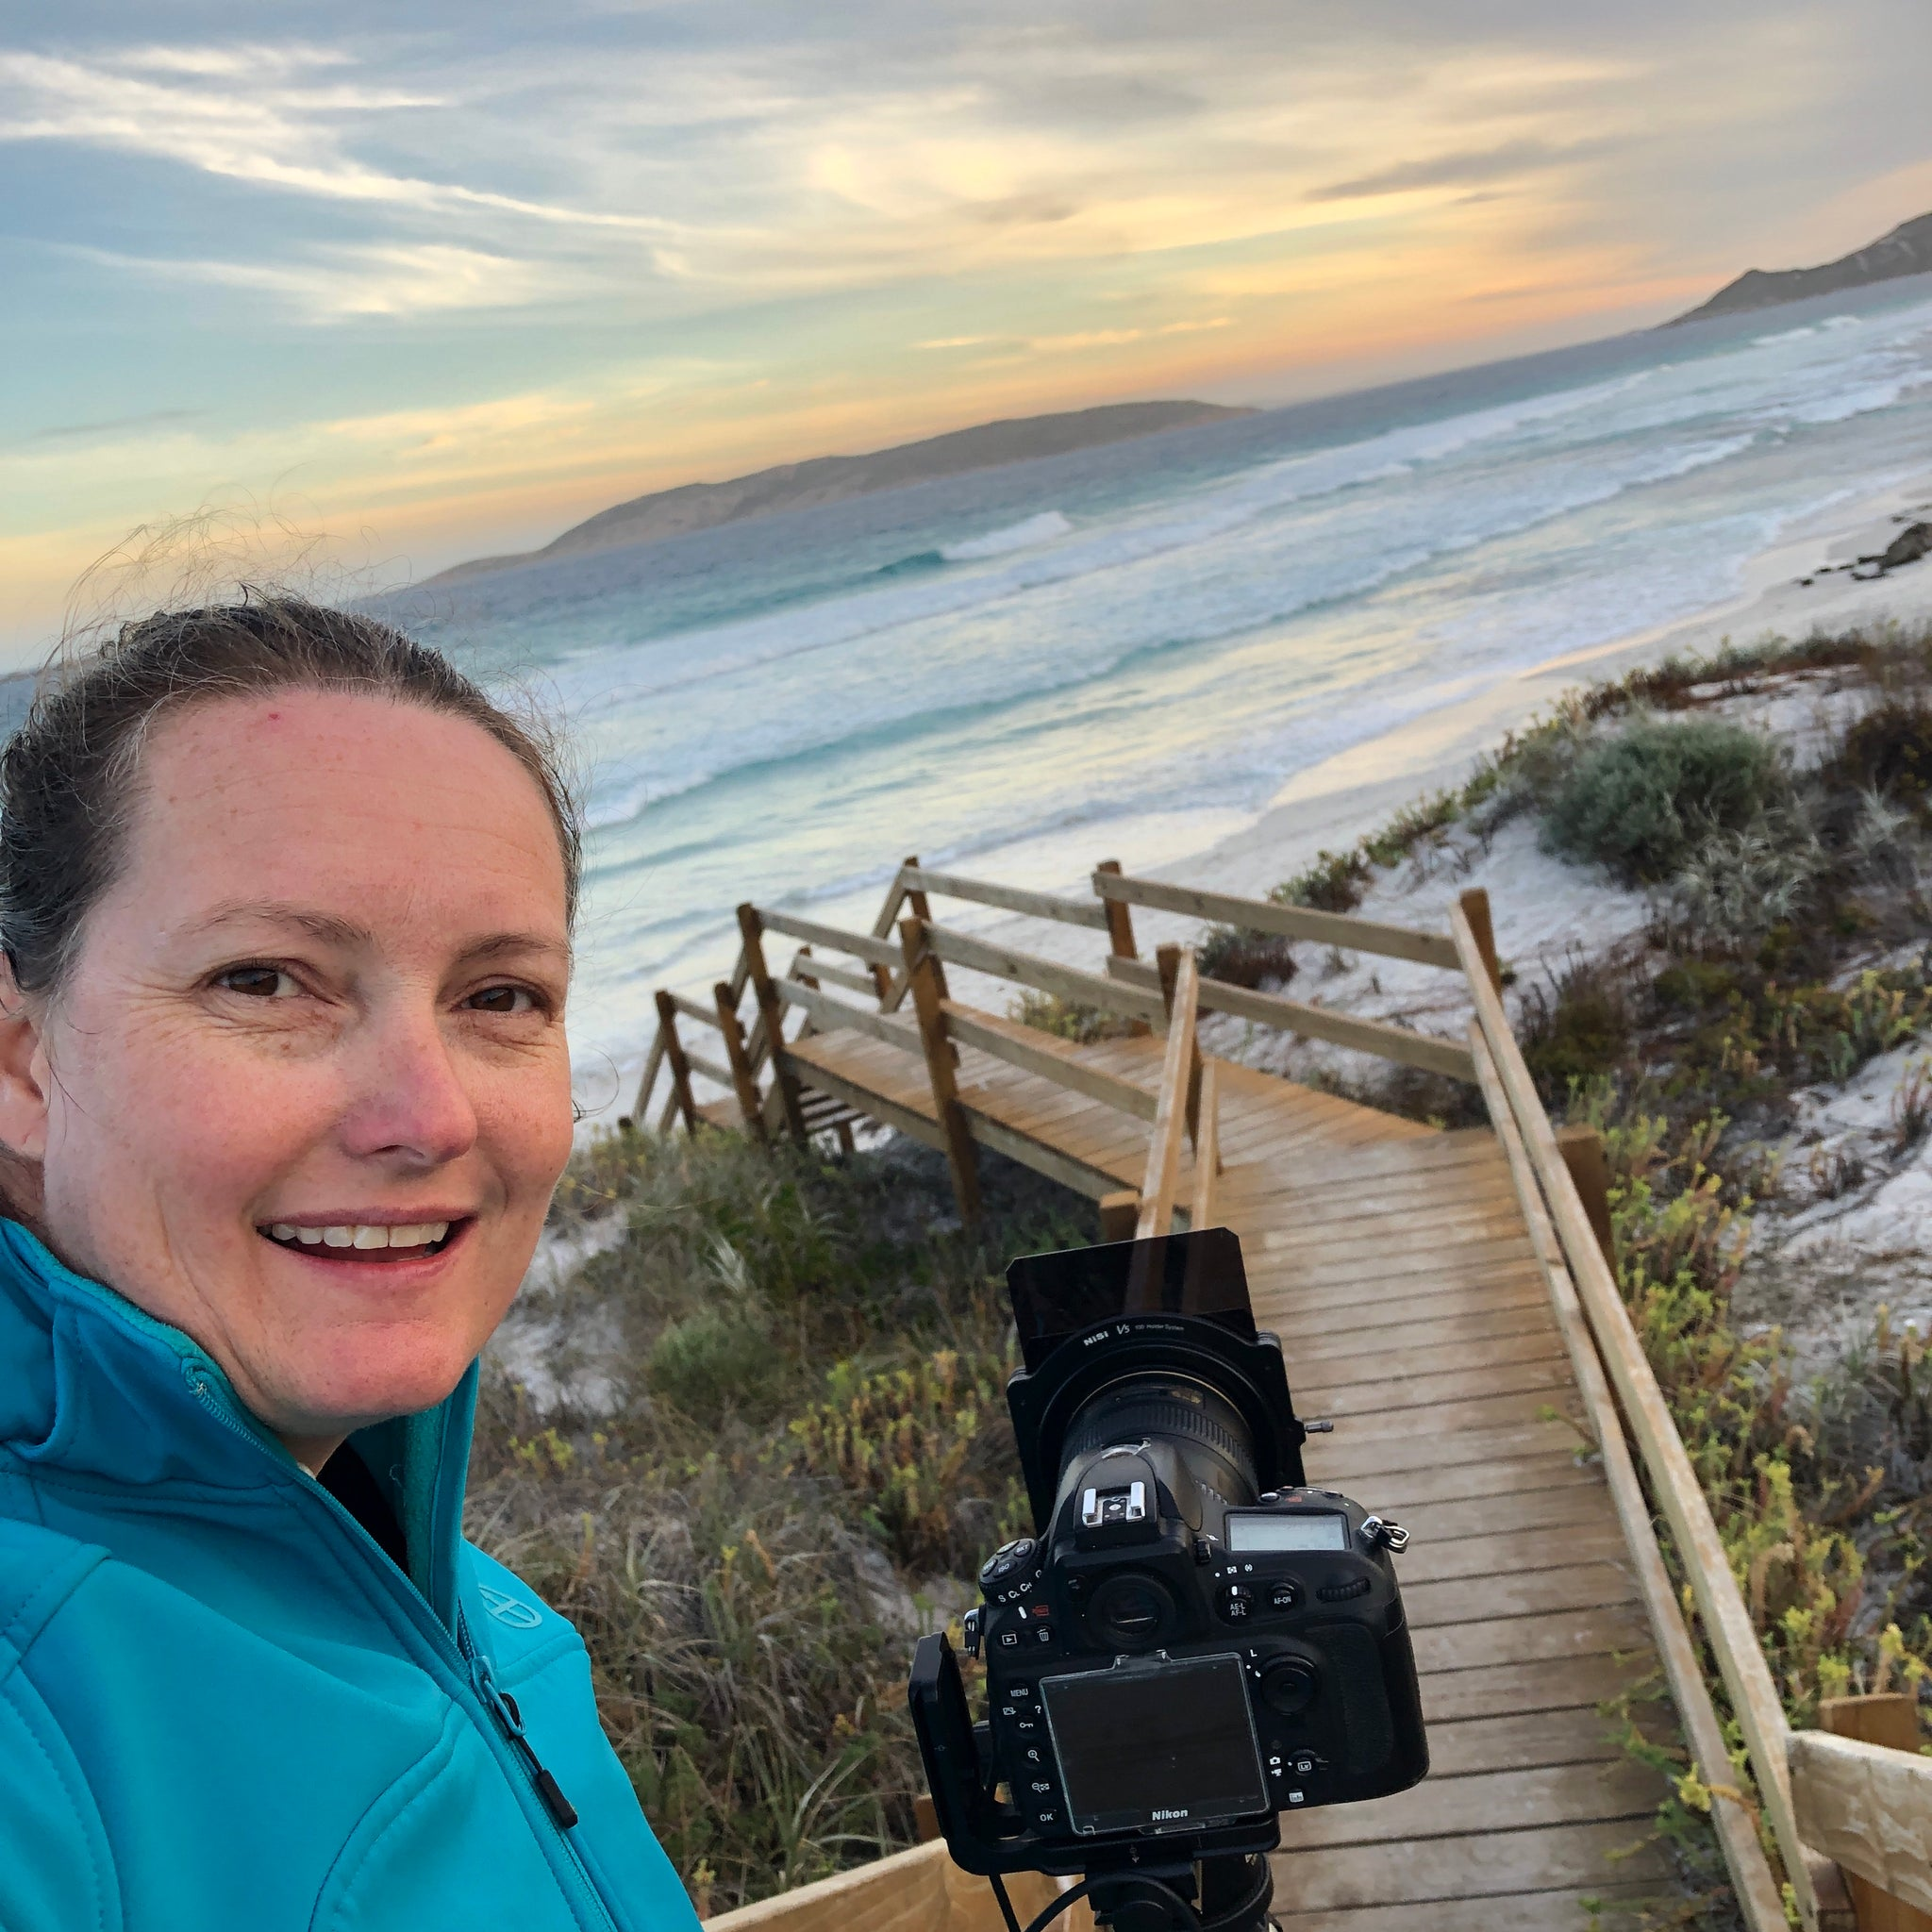 Out shooting a new image at one of my local beaches in Esperance, Western Australia